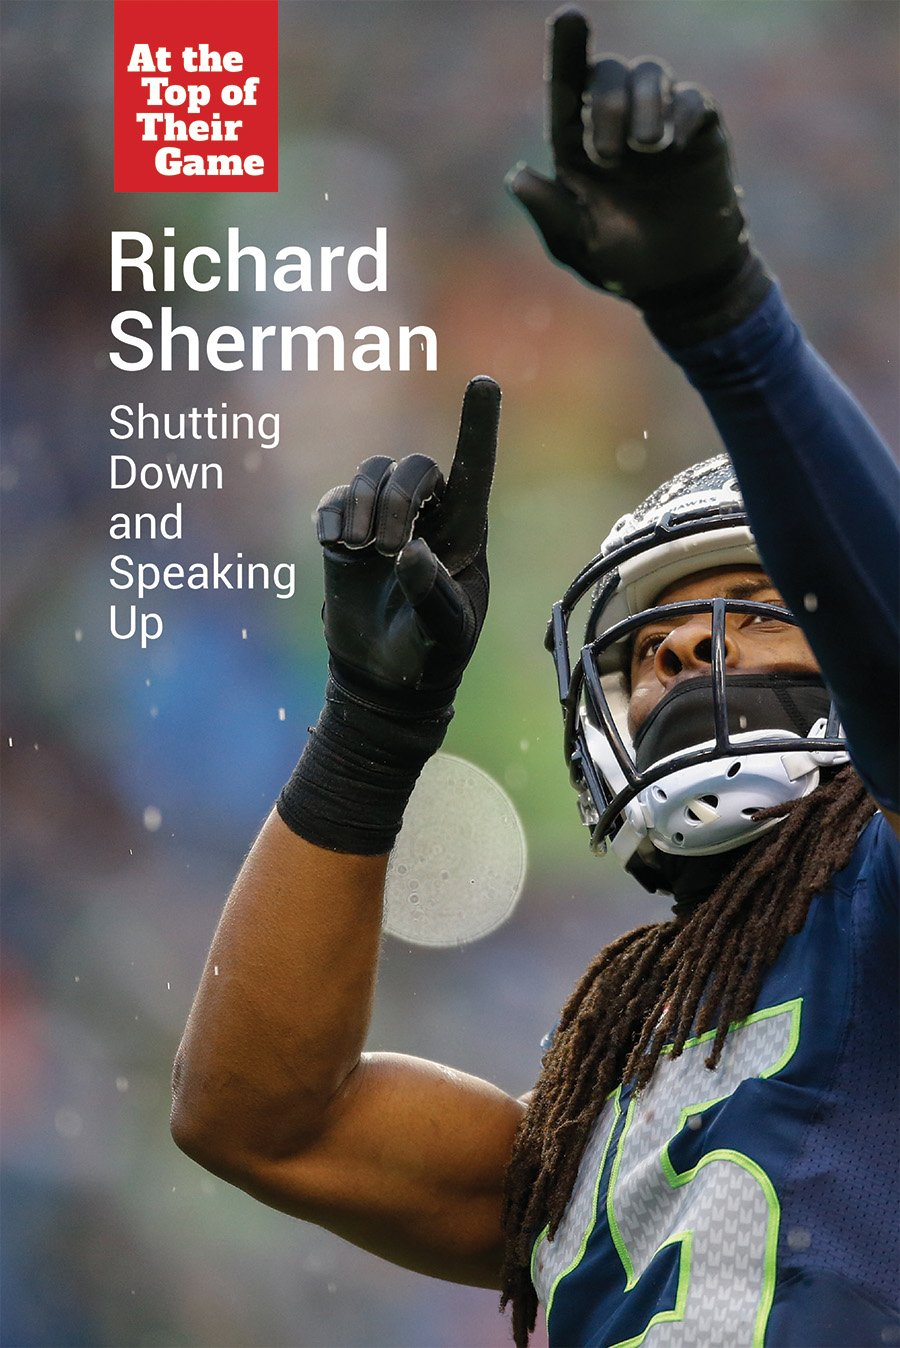 Richard Sherman: Shutting Down and Speaking Up (At the Top of Their Game)